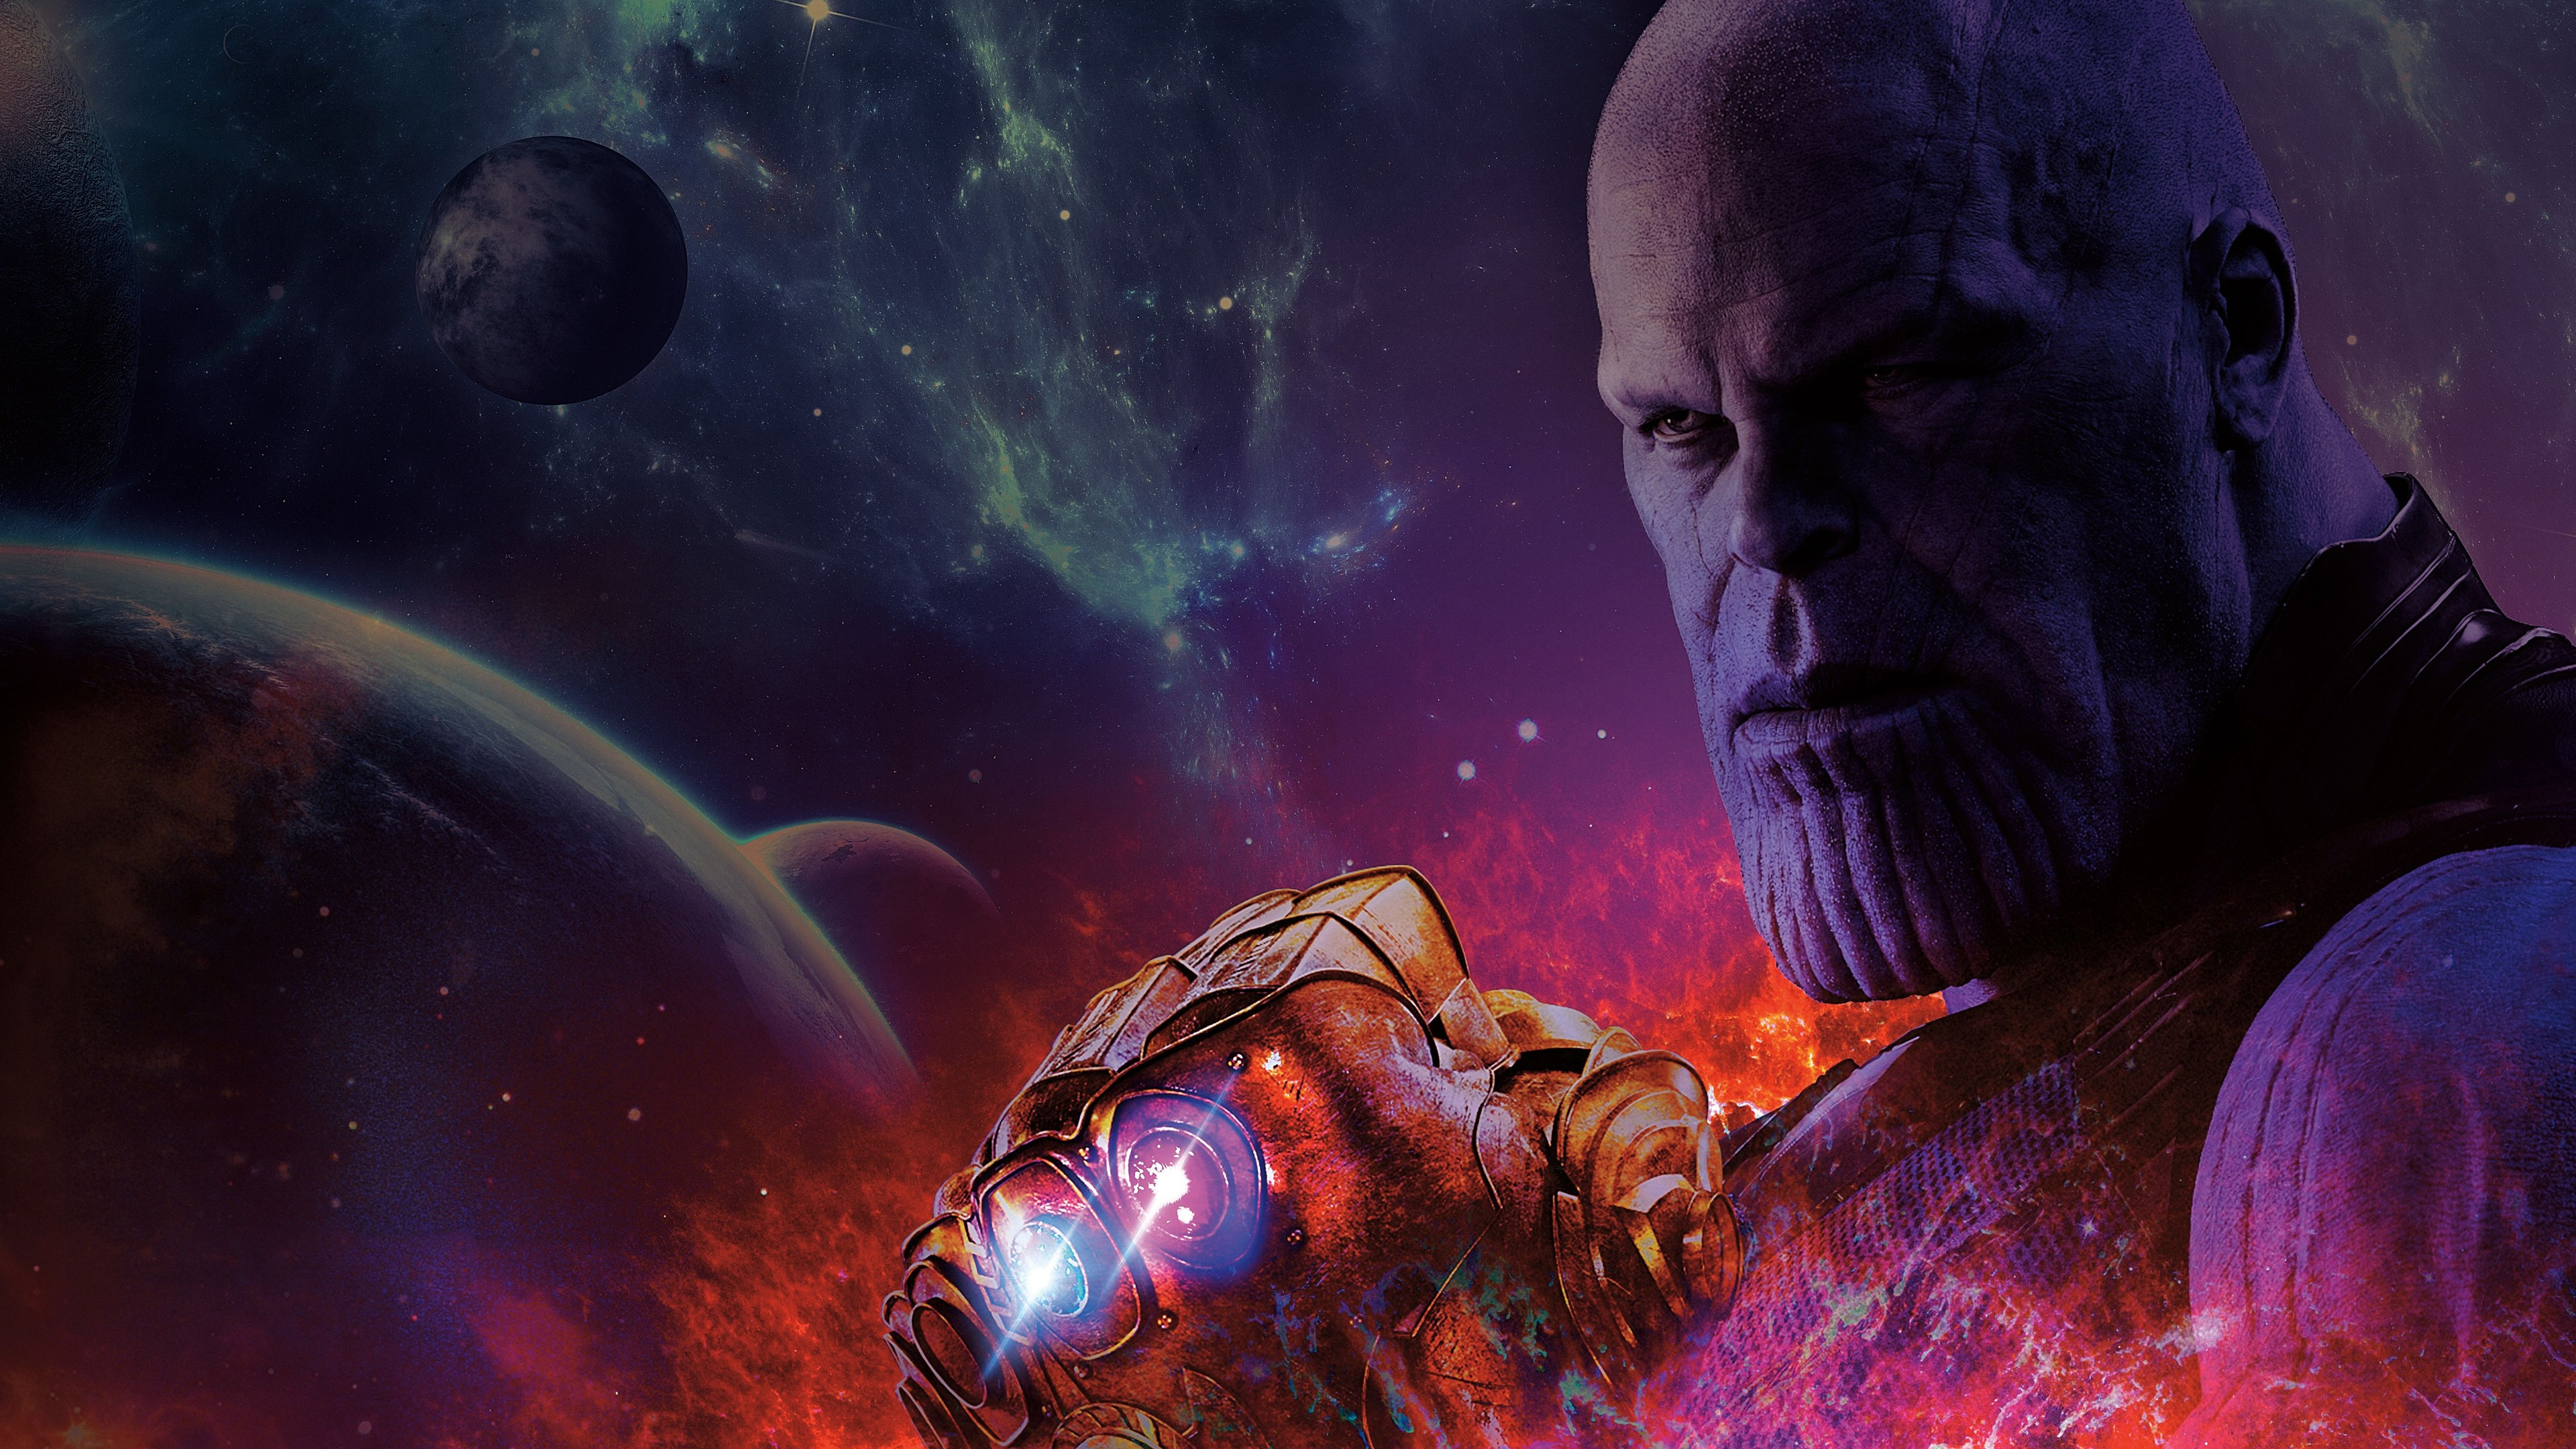 thanos avengers 4 4k 1541969681 - Thanos Avengers 4 4k - thanos-wallpapers, supervillain wallpapers, superheroes wallpapers, movies wallpapers, hd-wallpapers, avengers-wallpapers, avengers 4 wallpapers, 4k-wallpapers